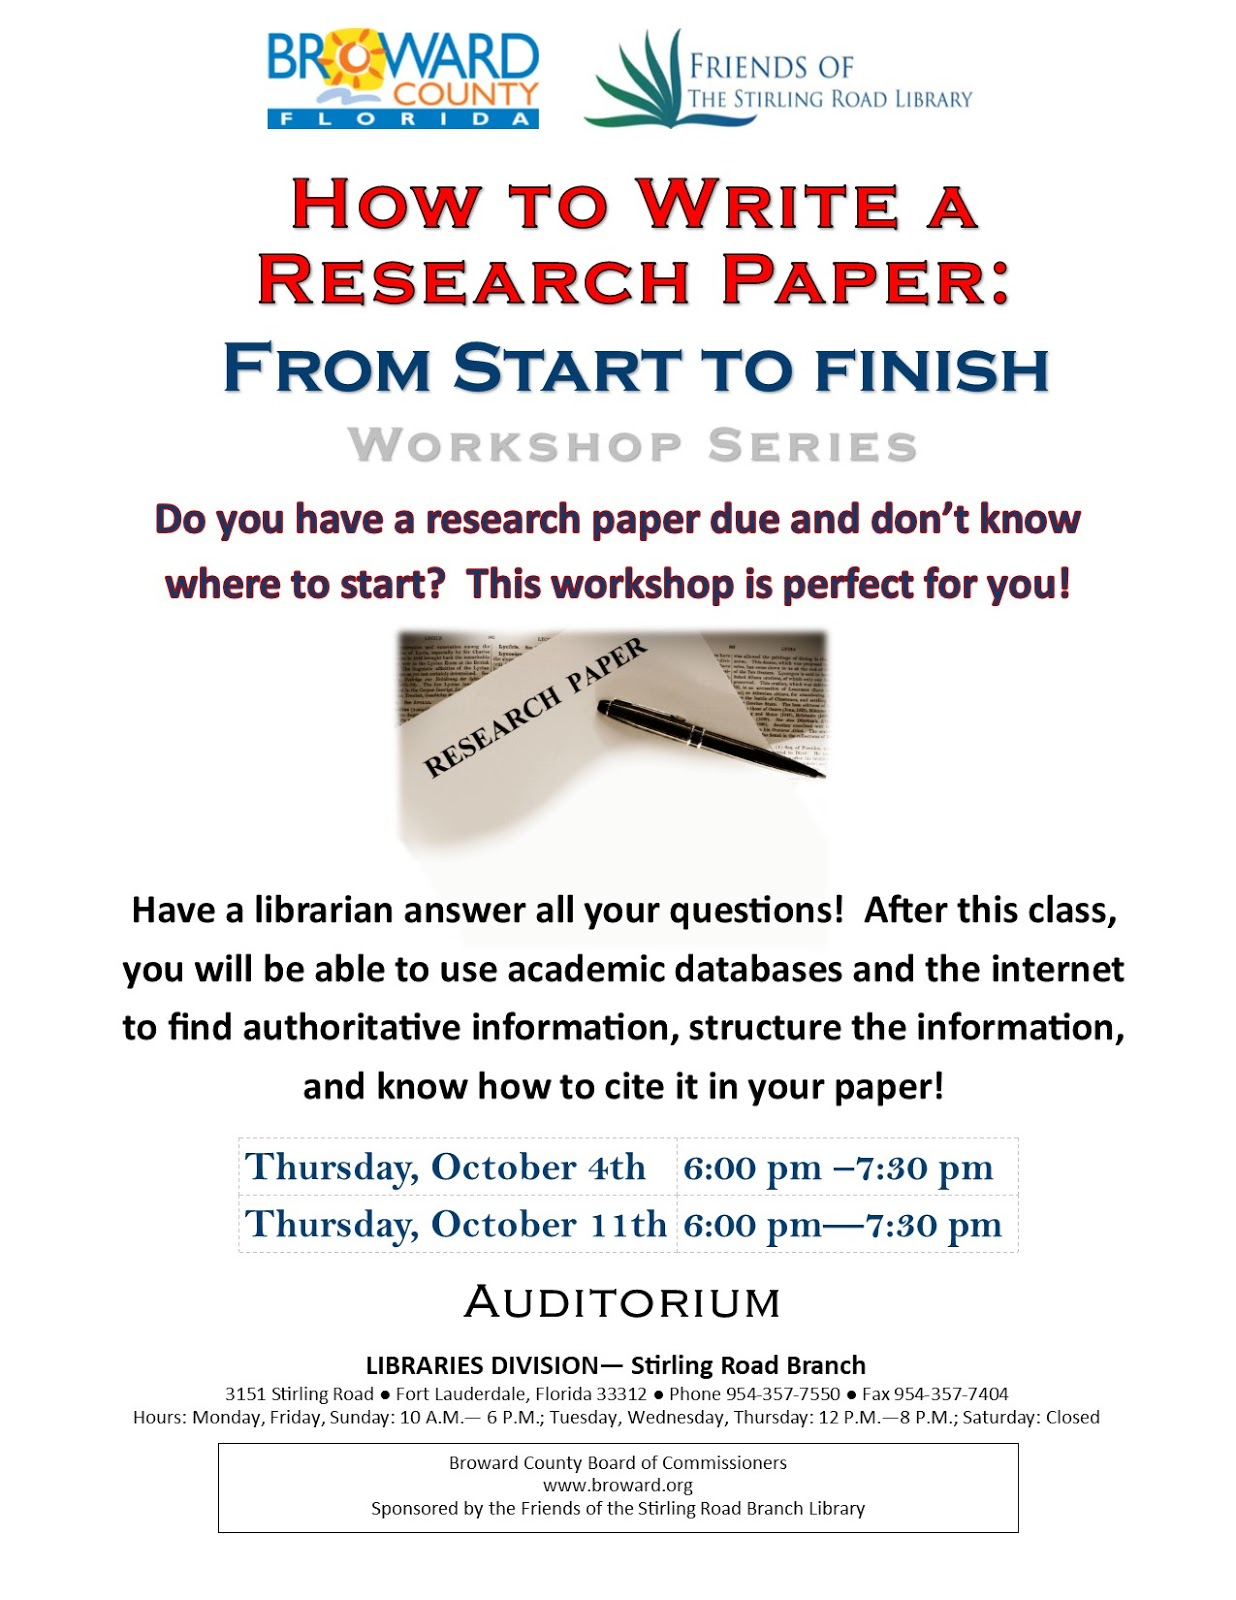 019 Research Paper How To Write Papers Best A - Pdf (2015) Conclusion An Introduction And Full